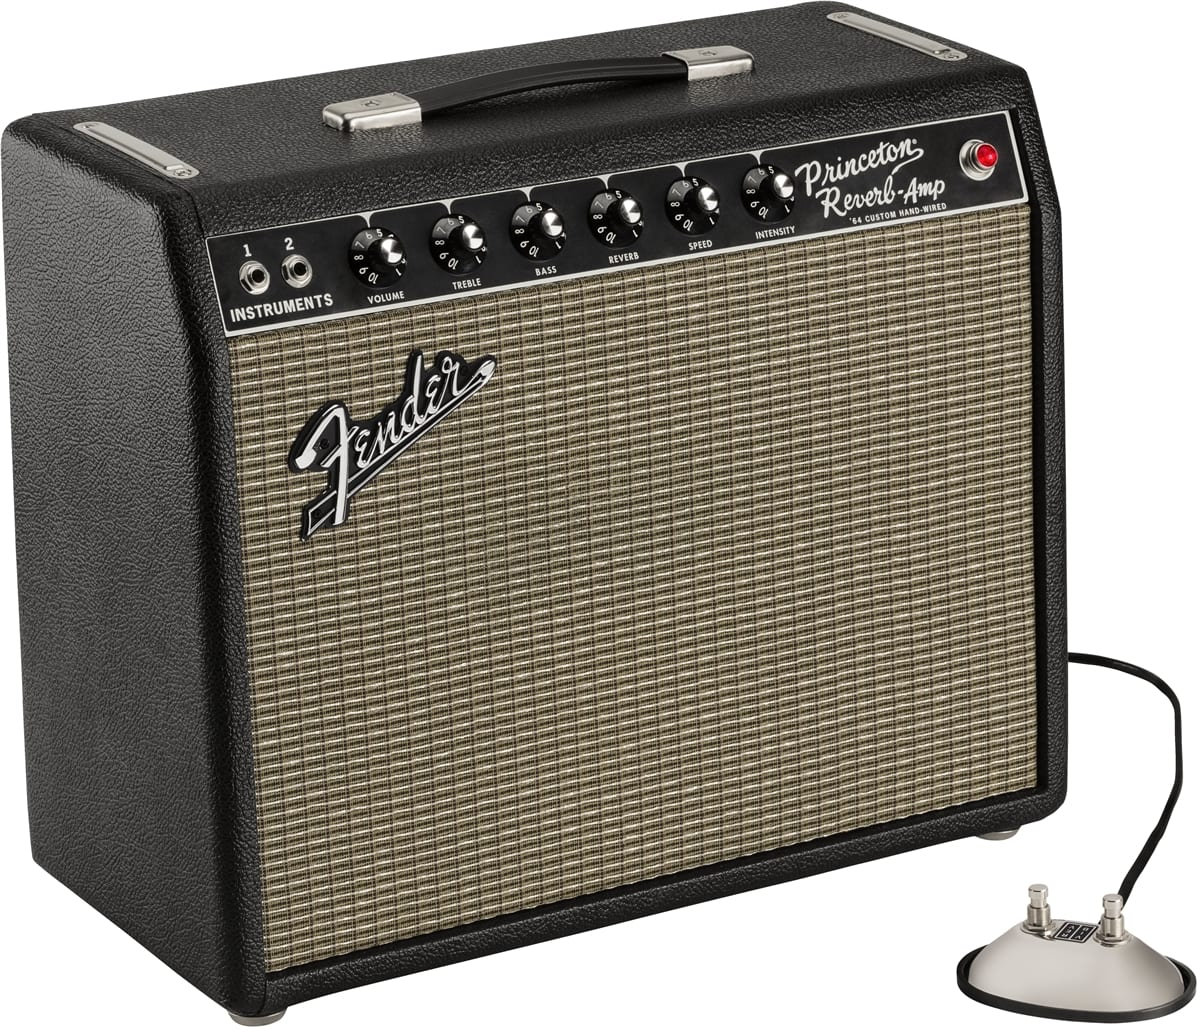 Fender hand-wired '64 Custom Princeton Reverb and footswitch